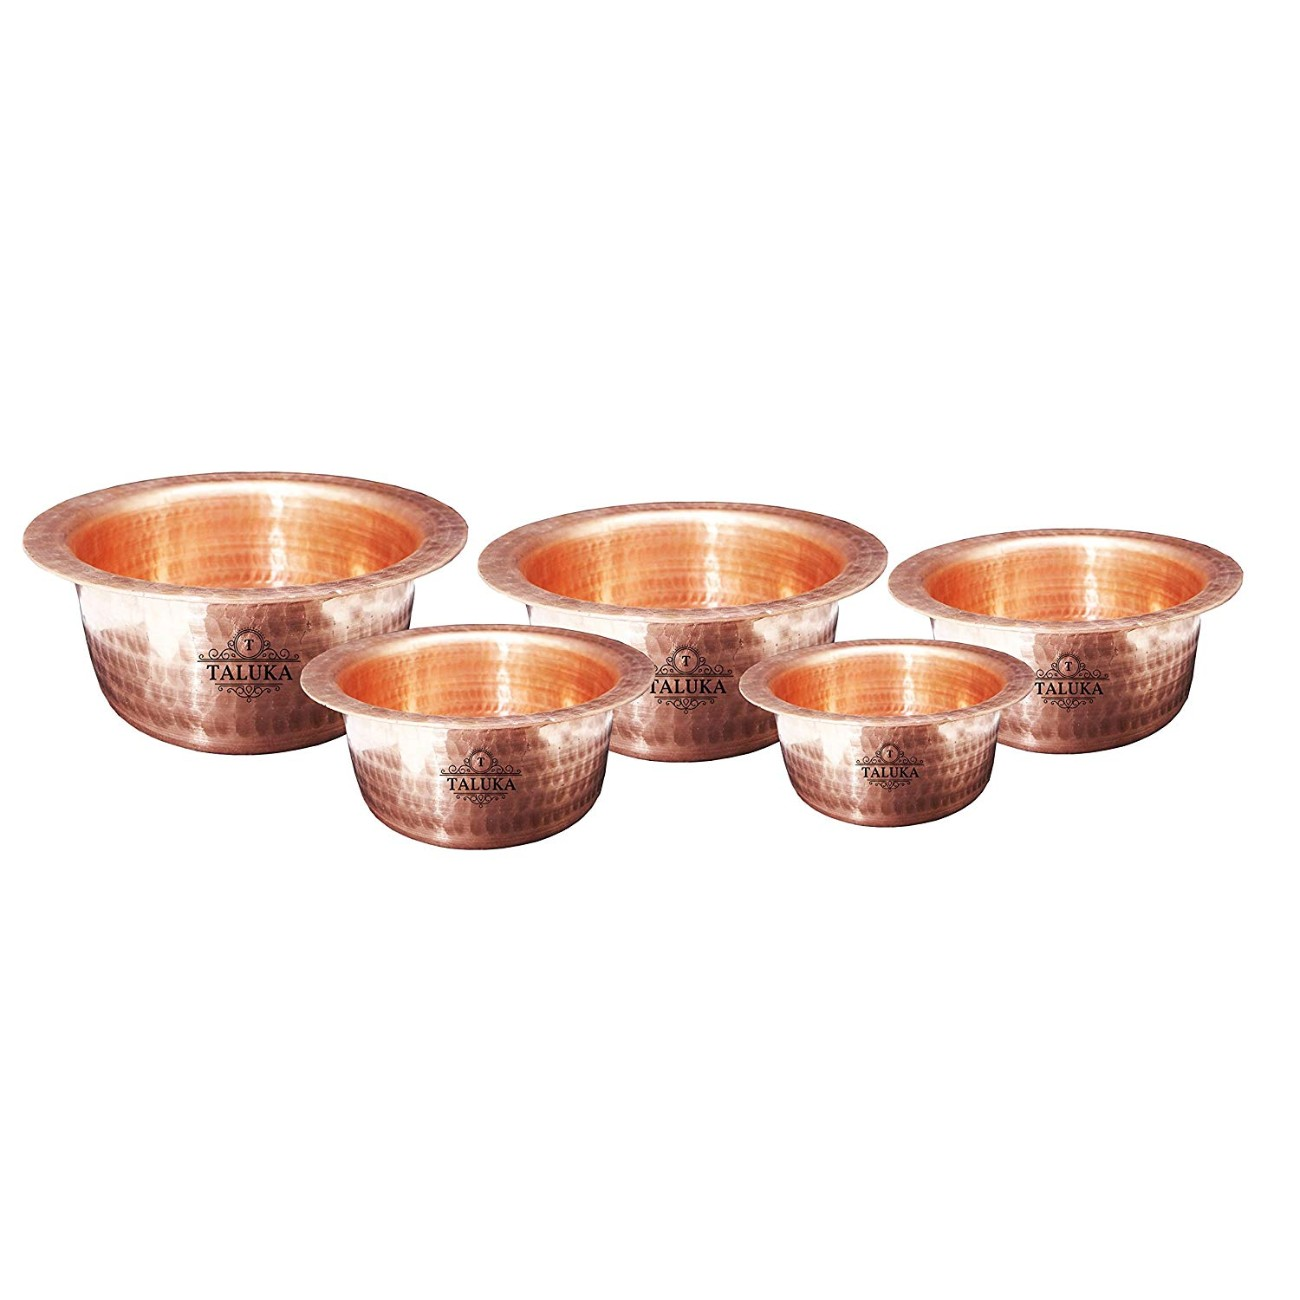 Handmade Copper Hammered Tope Topia / Patila Bhaguna Cooking Set